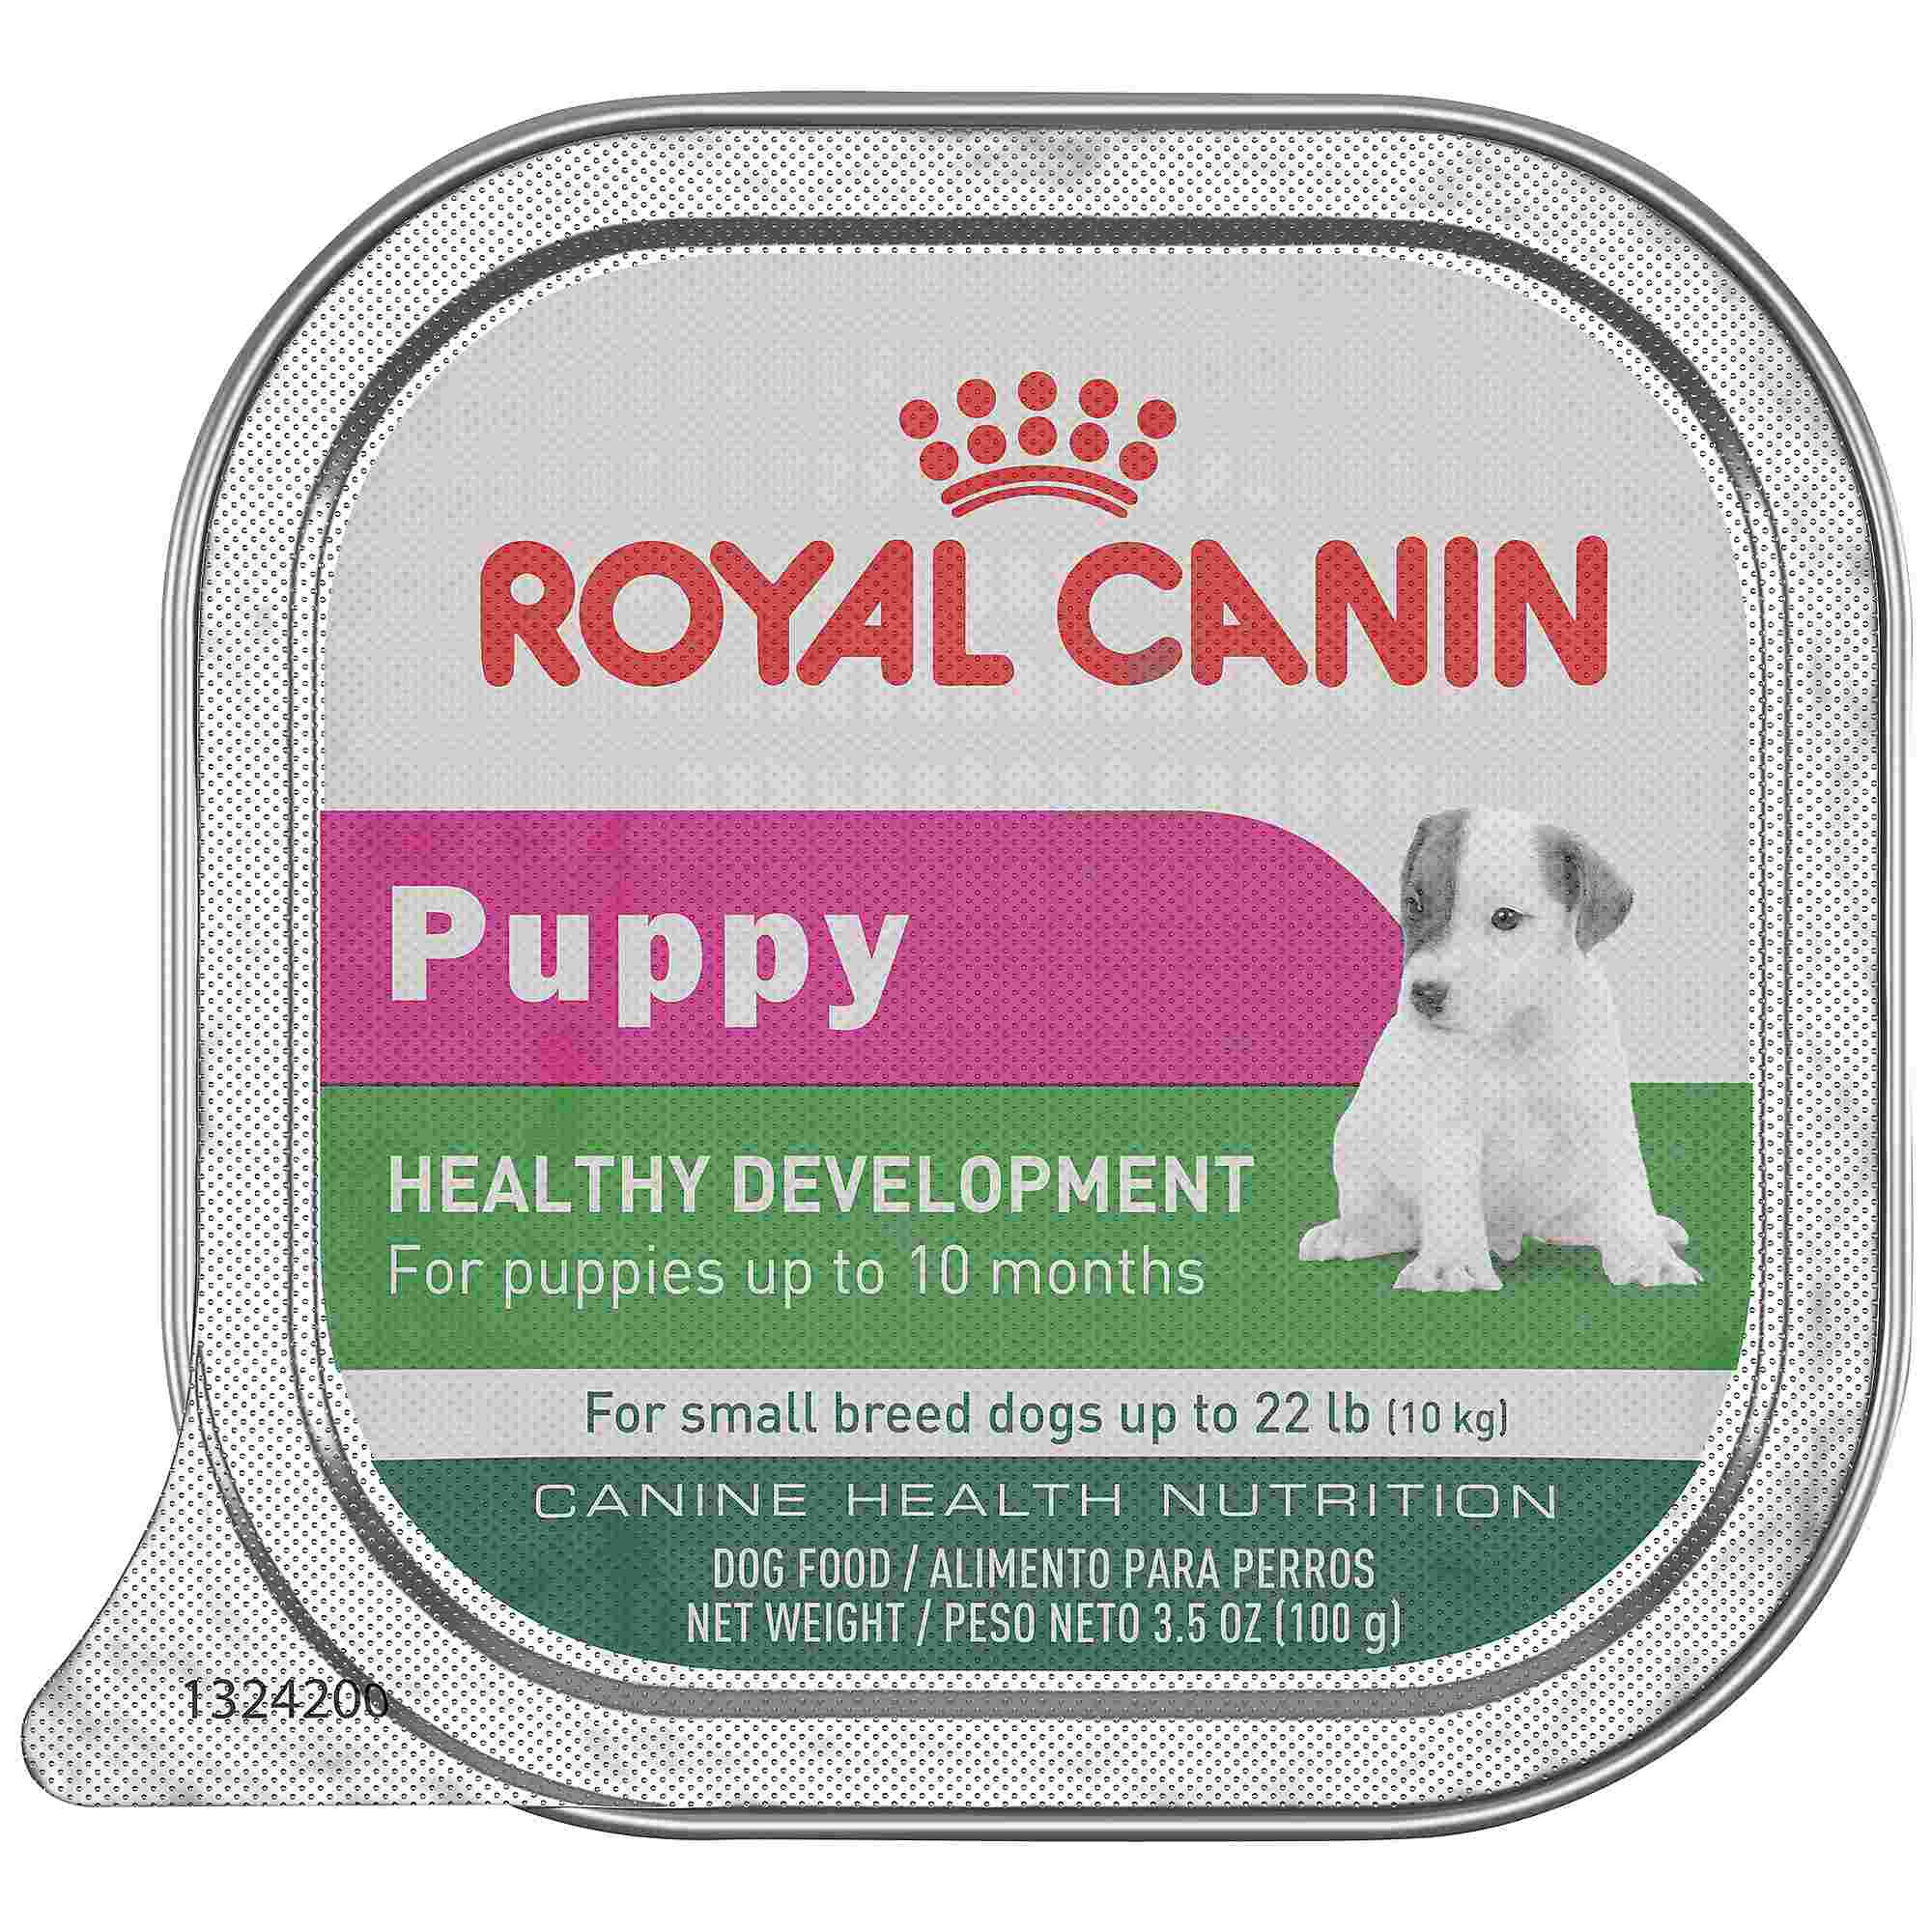 royal canin canine health nutrition puppy in gel tray dog food petco. Black Bedroom Furniture Sets. Home Design Ideas